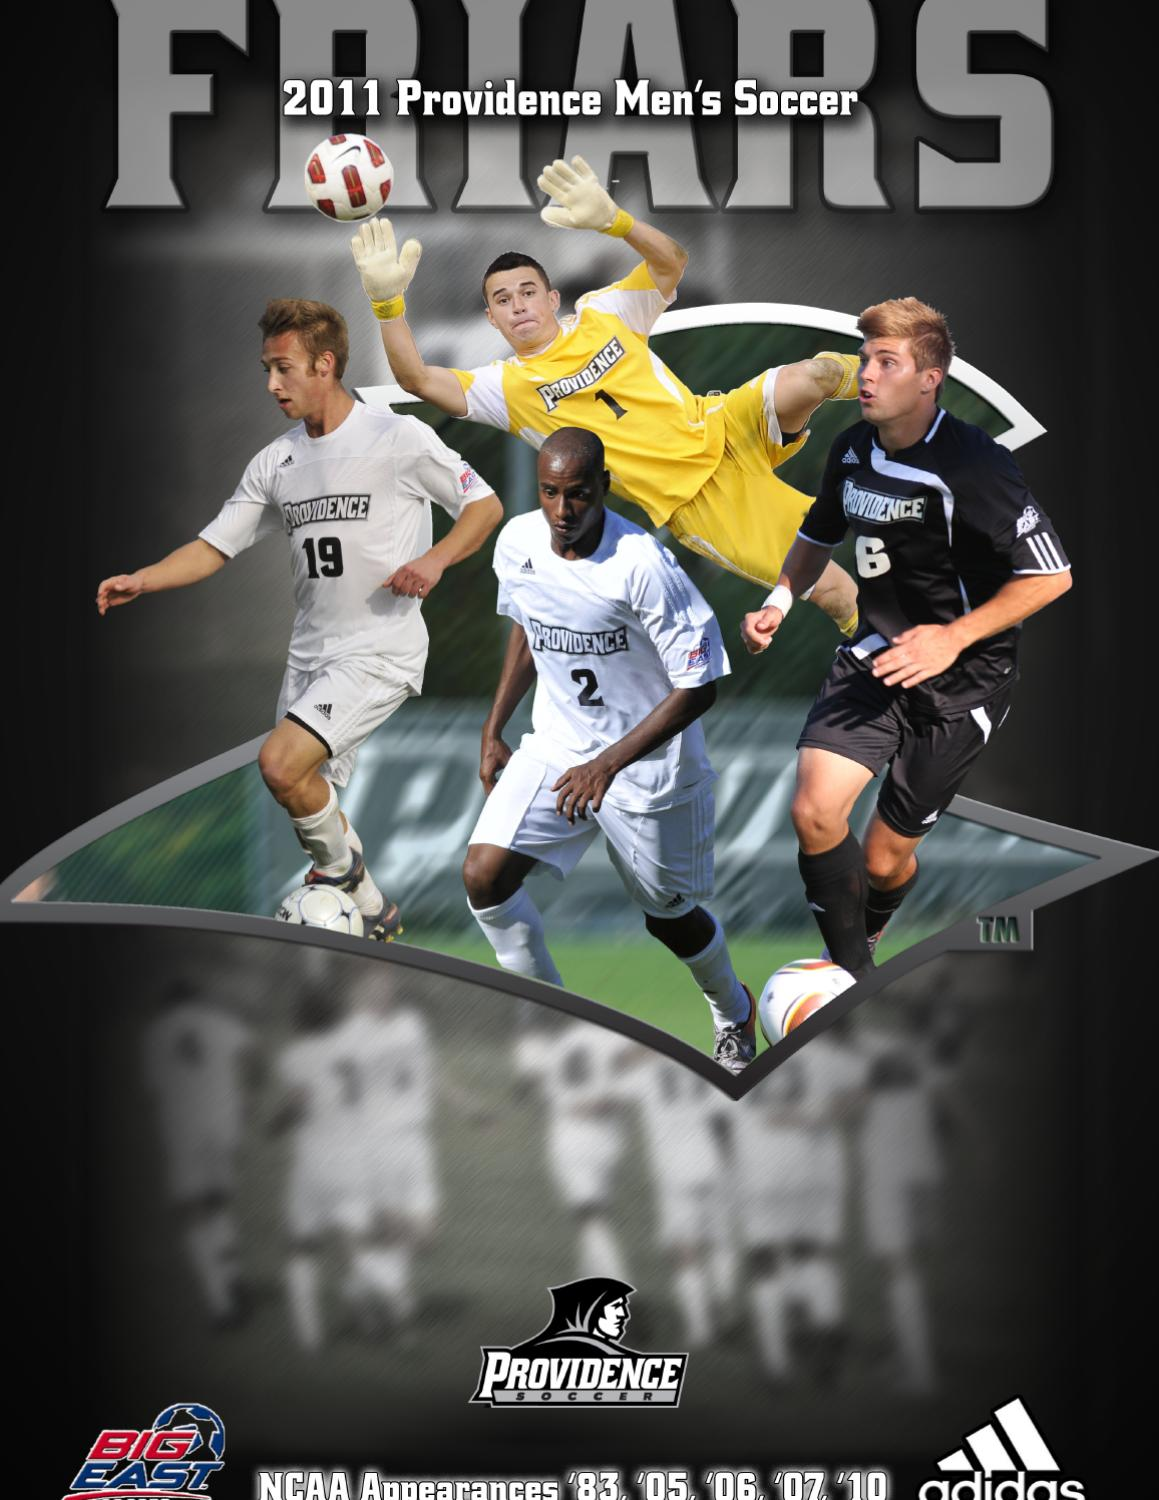 Providence College Men's Soccer - 2011 Online Team Guide by